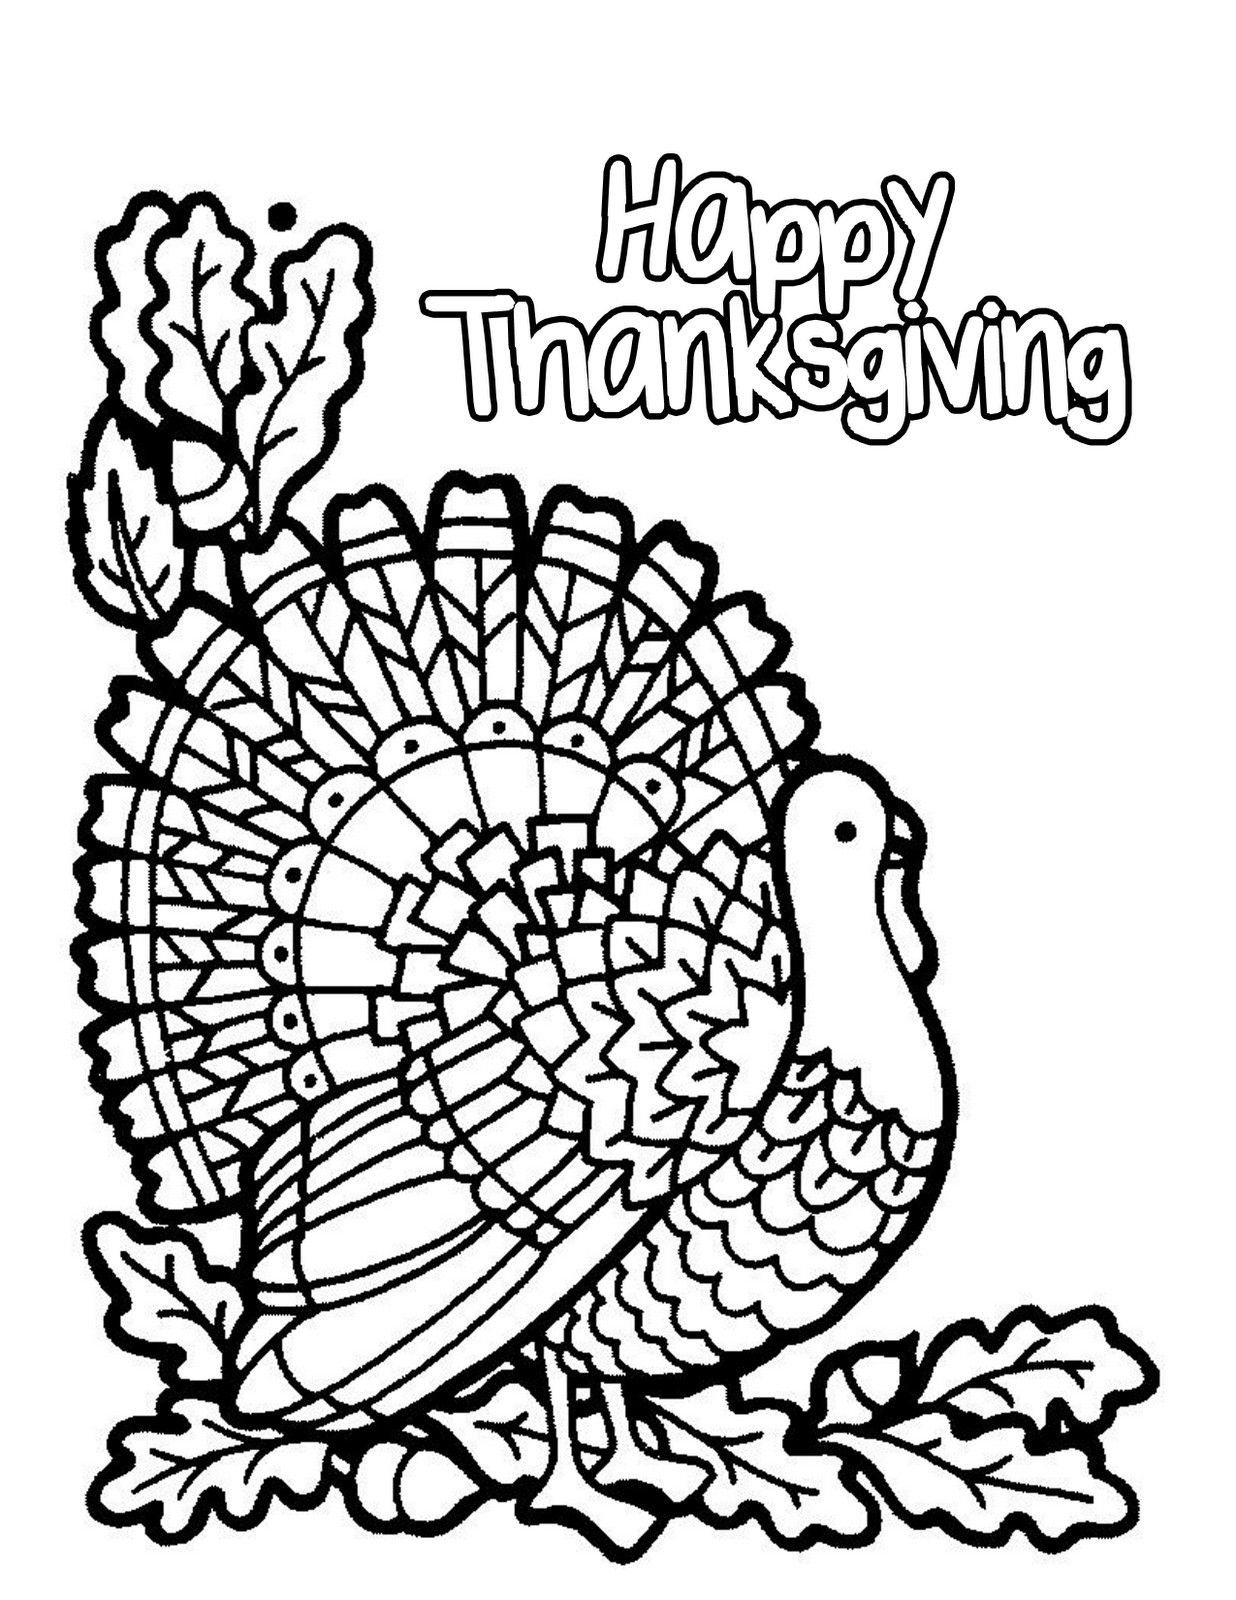 Printable Thanksgiving Coloring Pages | Thanksgiving | Pinterest ...